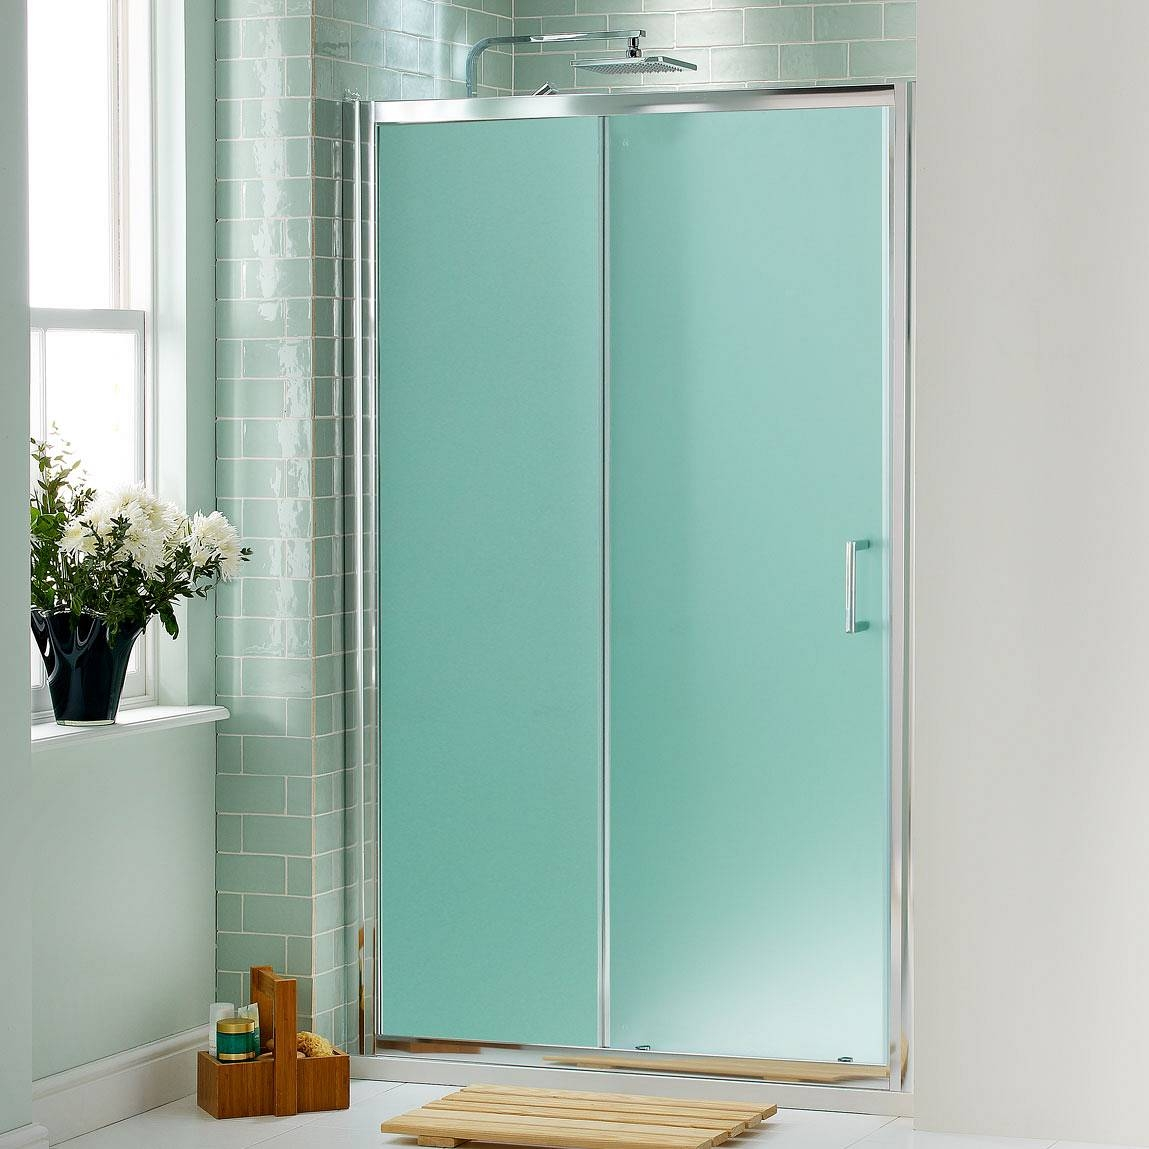 Bathroom Glass Door Picturesincredible frosted glass doors inspirational home decor and glass